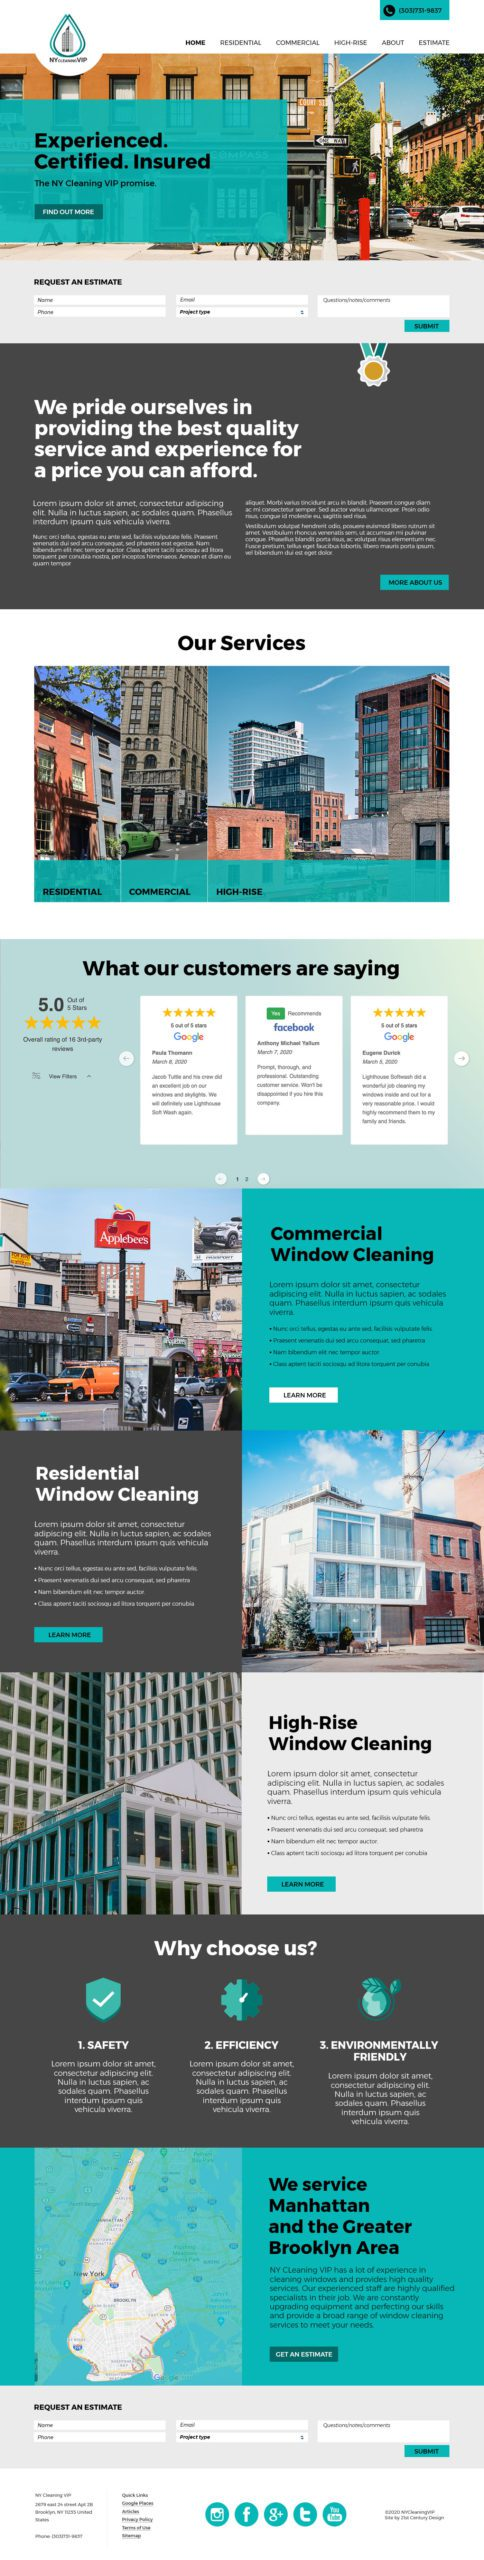 Window Cleaning Custom Website Design